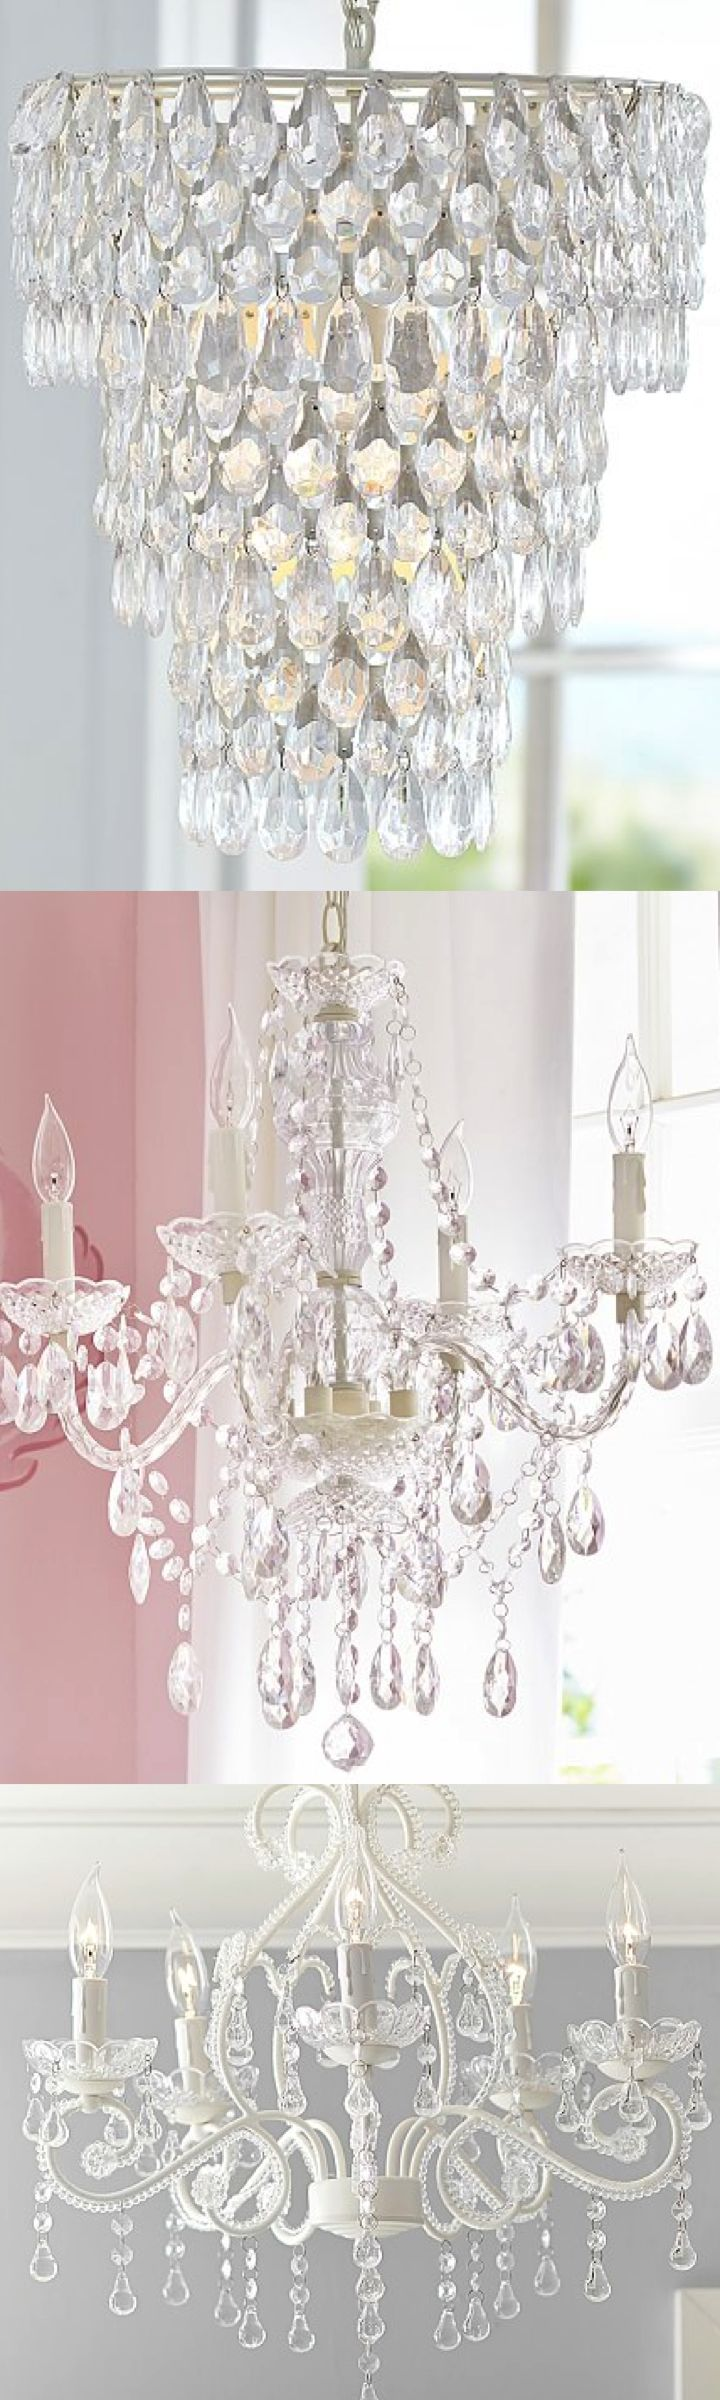 girls teenage colors decor alluring for amazing chandeliers baby canadaating childrens likable decorations bedroom small lighting ideas in room lamps nz bedrooms chandelier girl